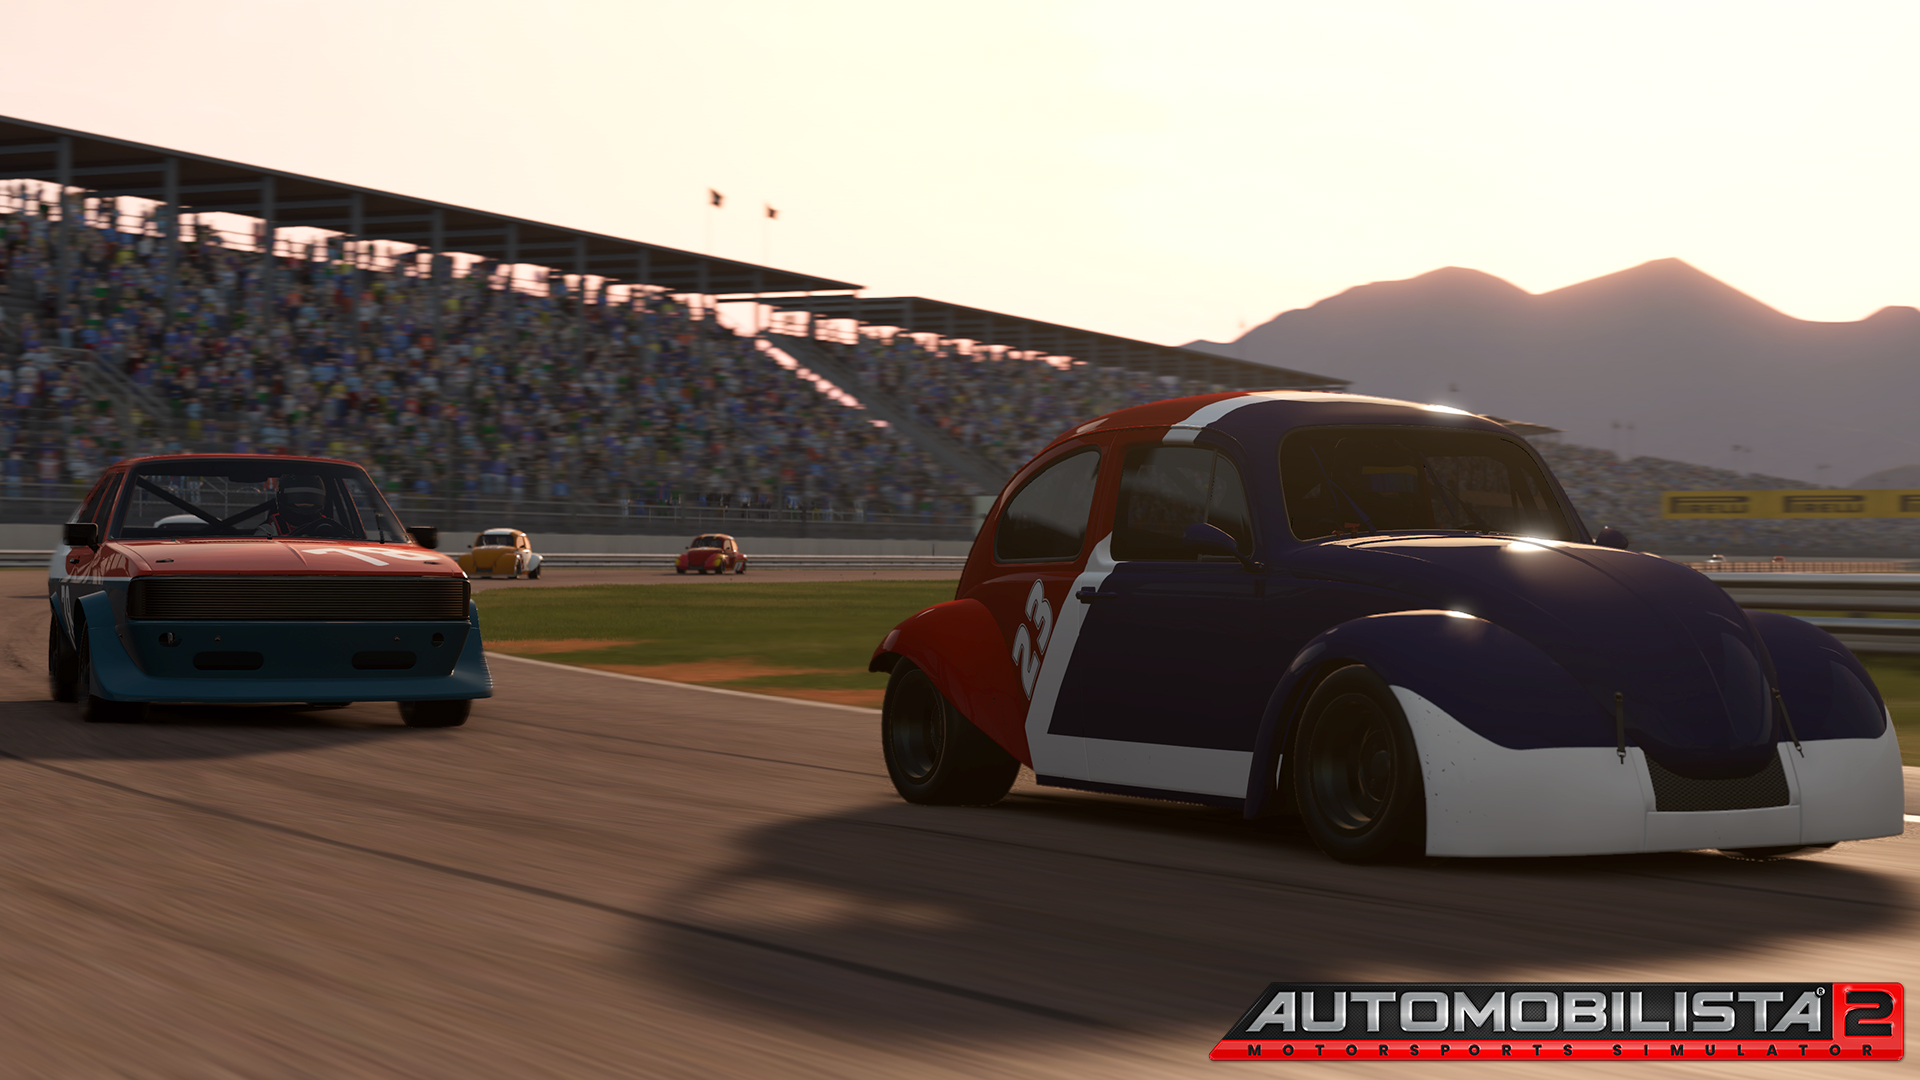 ams-2-update-1-jpg Automobilista 2 | Latest Update Adds Hot Cars Series